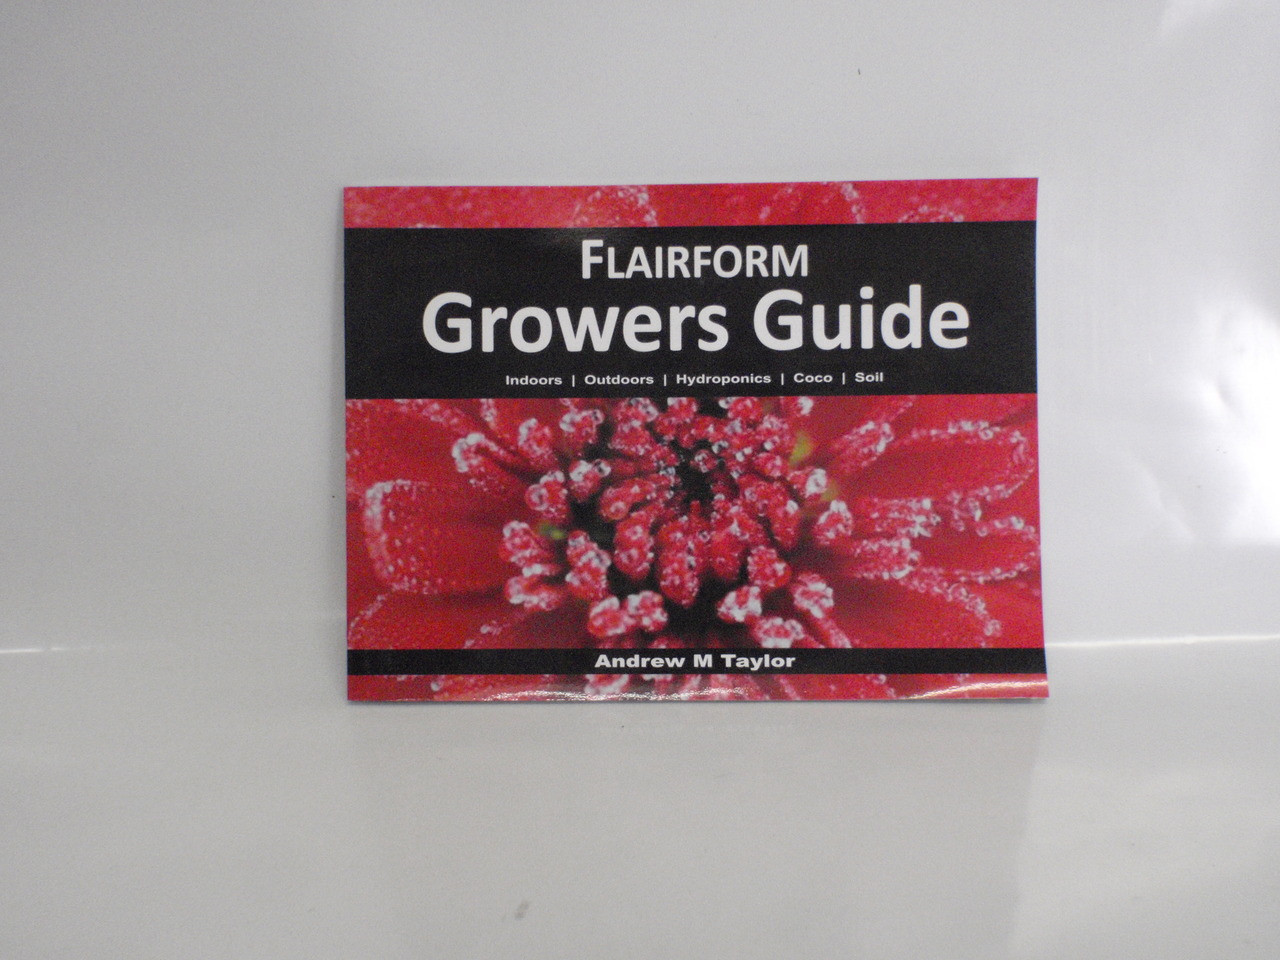 Flairform Growers Guide